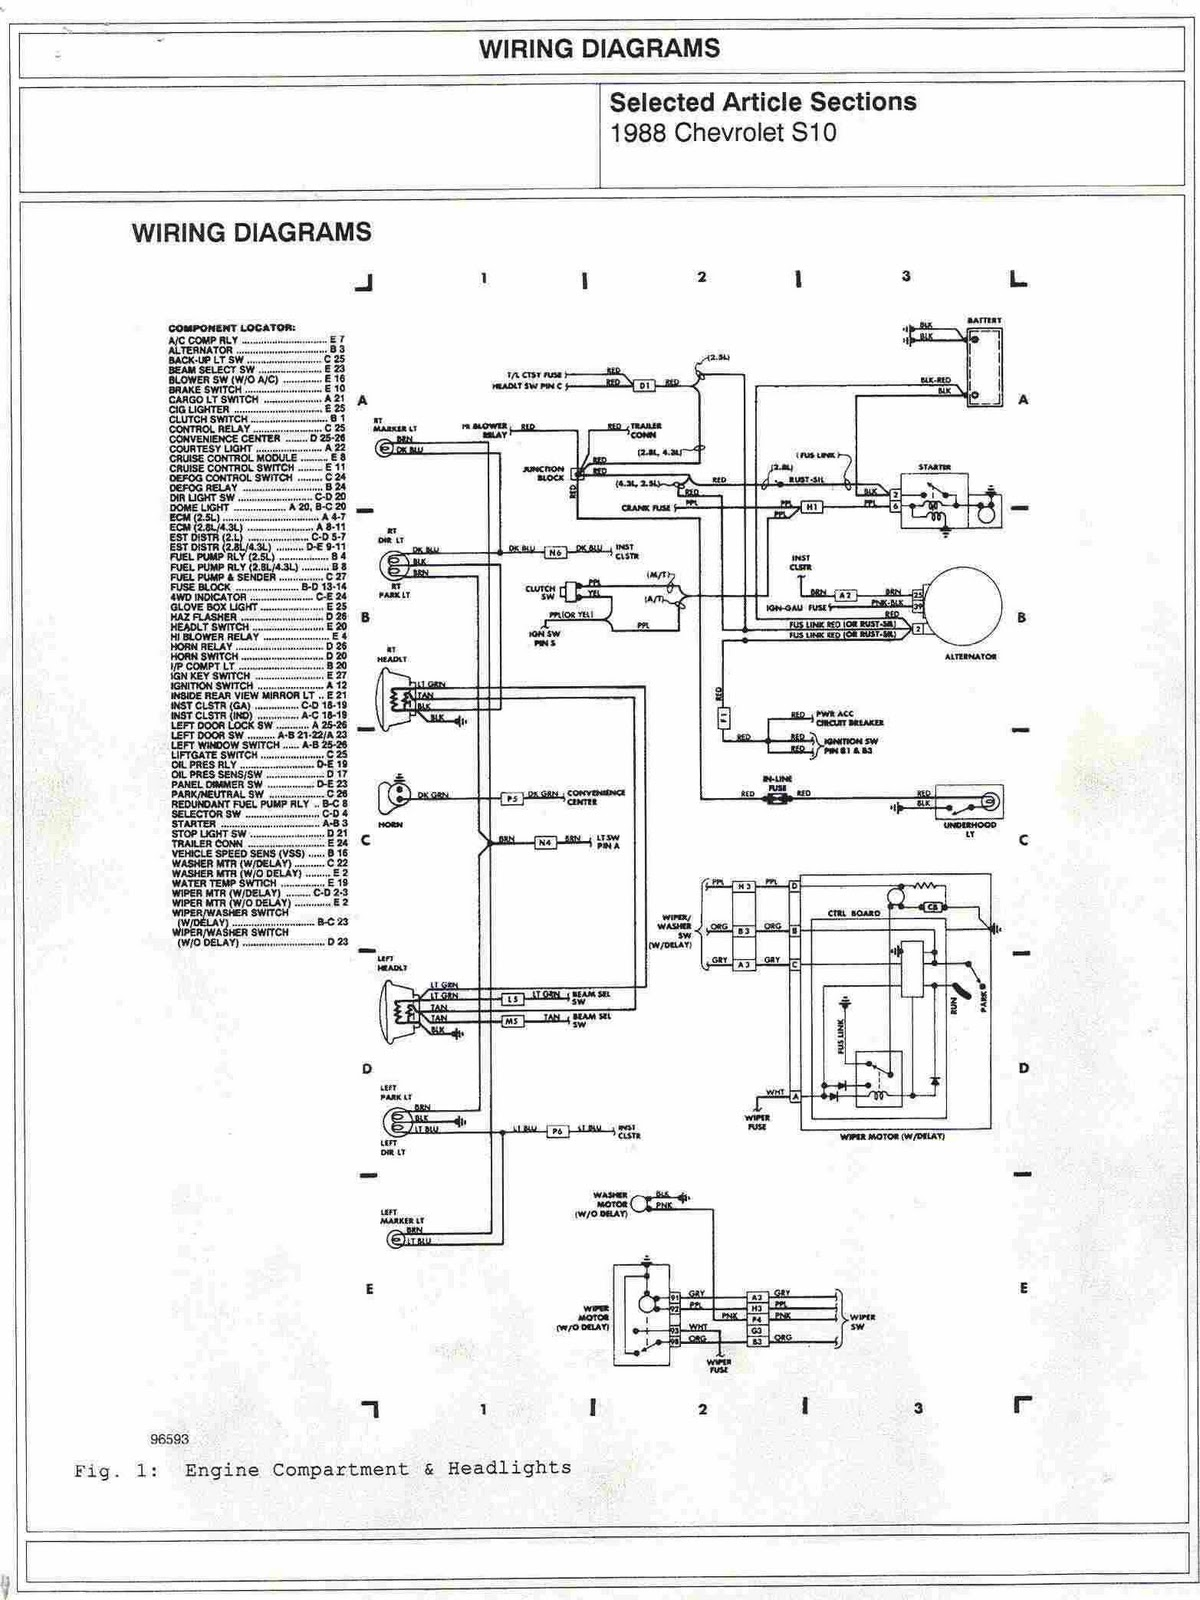 1988+Chevrolet+S10+Engine+Compartment+and+Headlights+Wiring+Diagrams 1988 chevrolet s10 engine compartment and headlights wiring 1953 chevy bel air wiring diagram at reclaimingppi.co